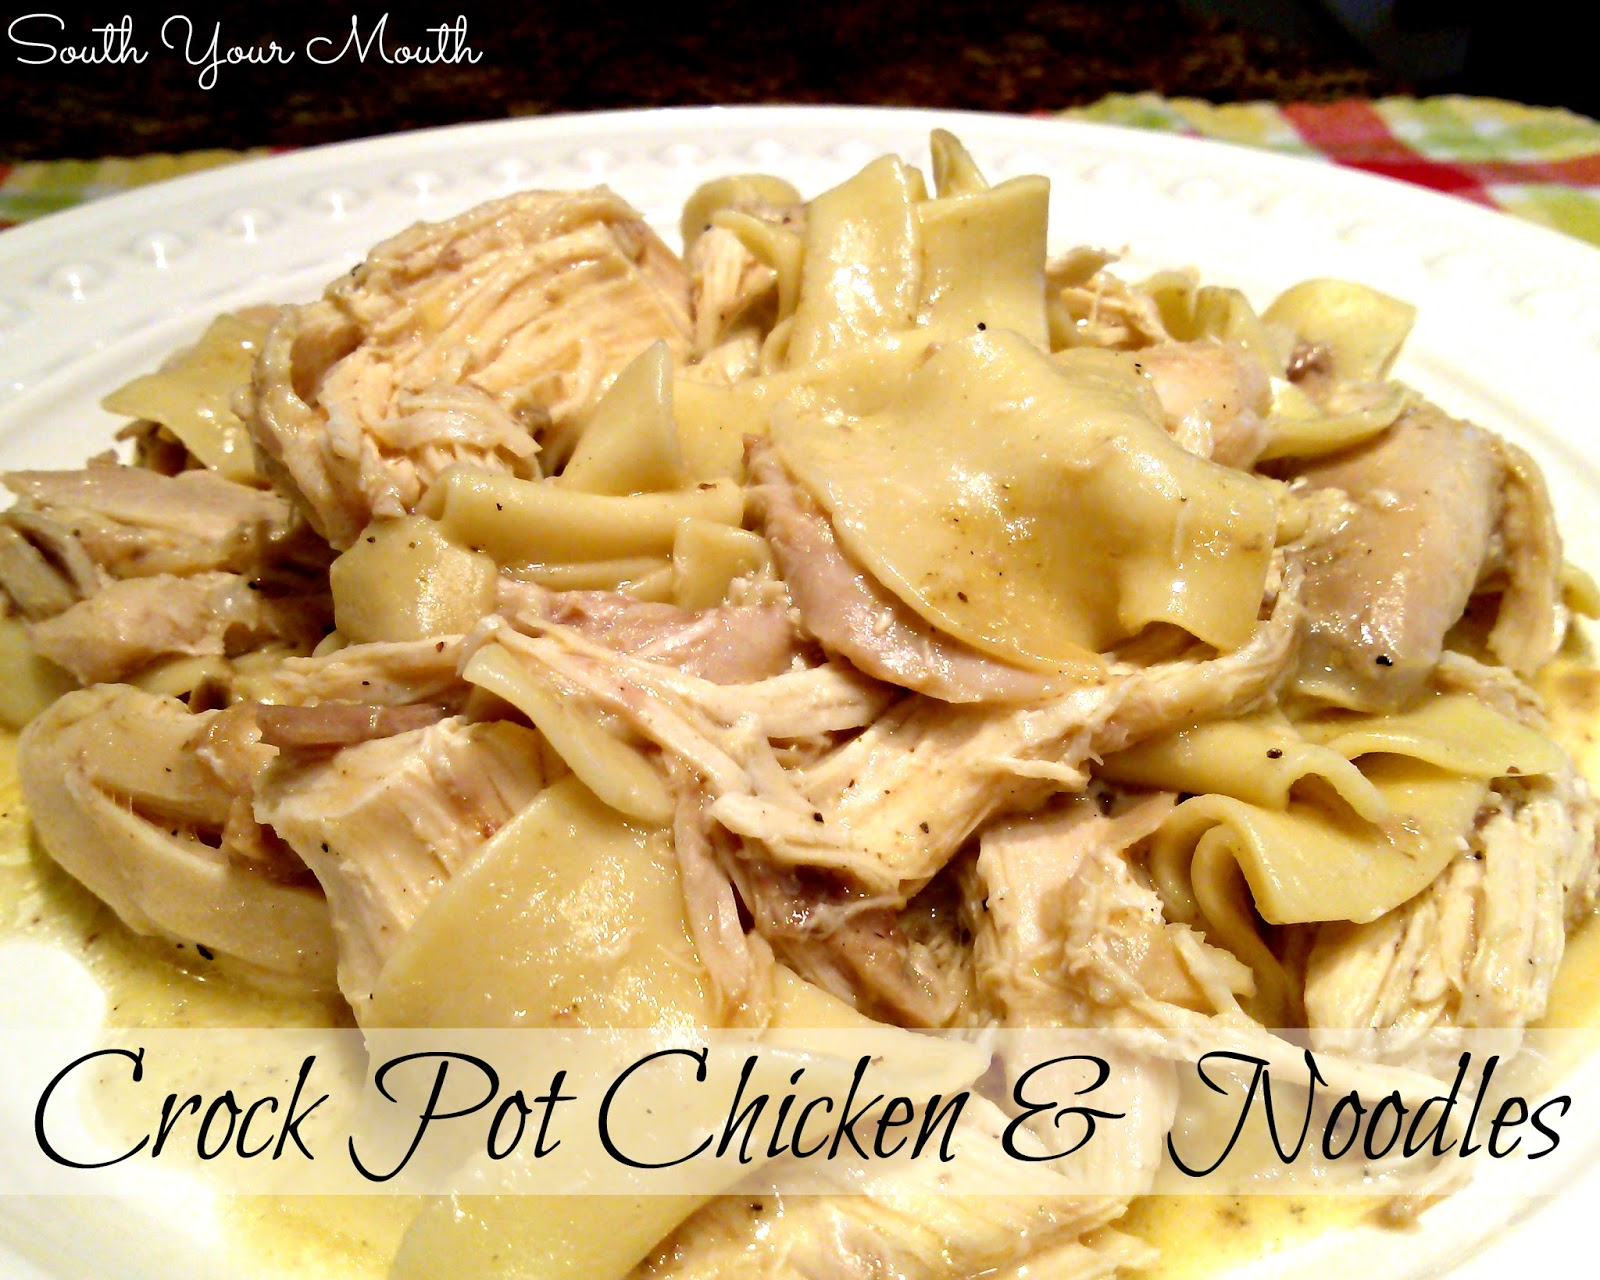 South your mouth crock pot chicken and noodles crock forumfinder Images